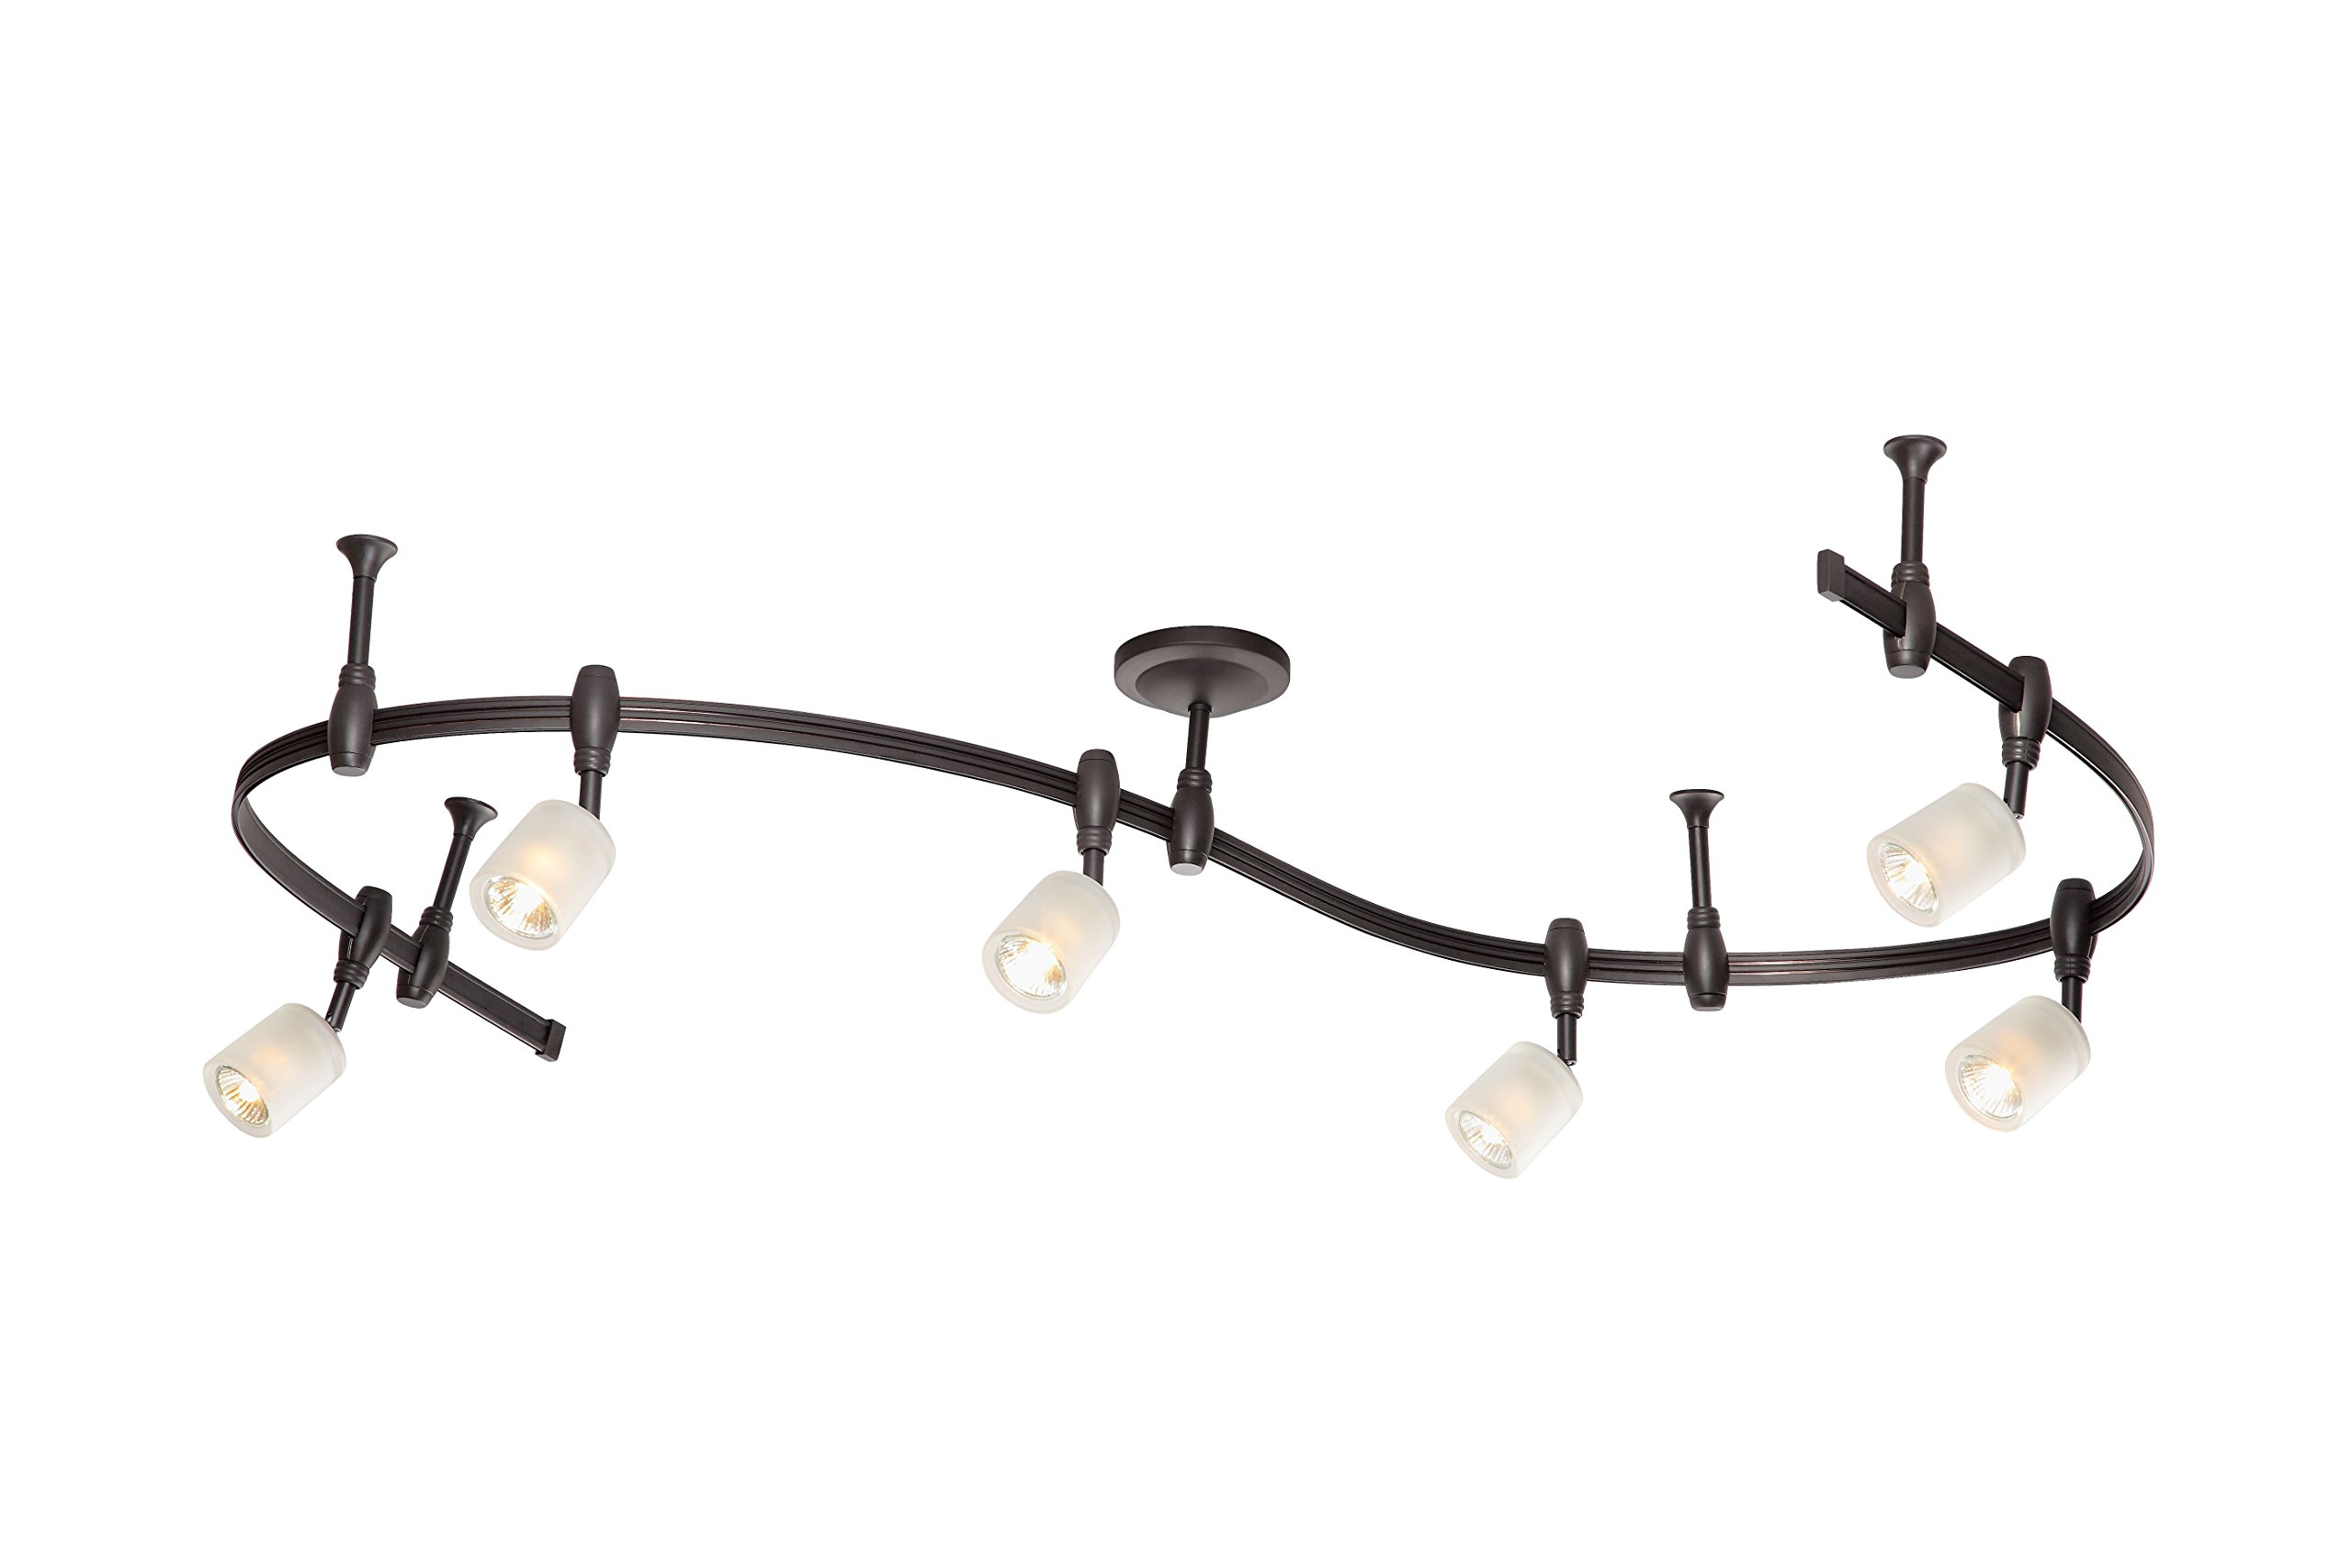 Catalina Lighting 19657-001 Benny 6 Bullet Flex Rail Track Lighting Kit, 96'', Bronze by Catalina Lighting